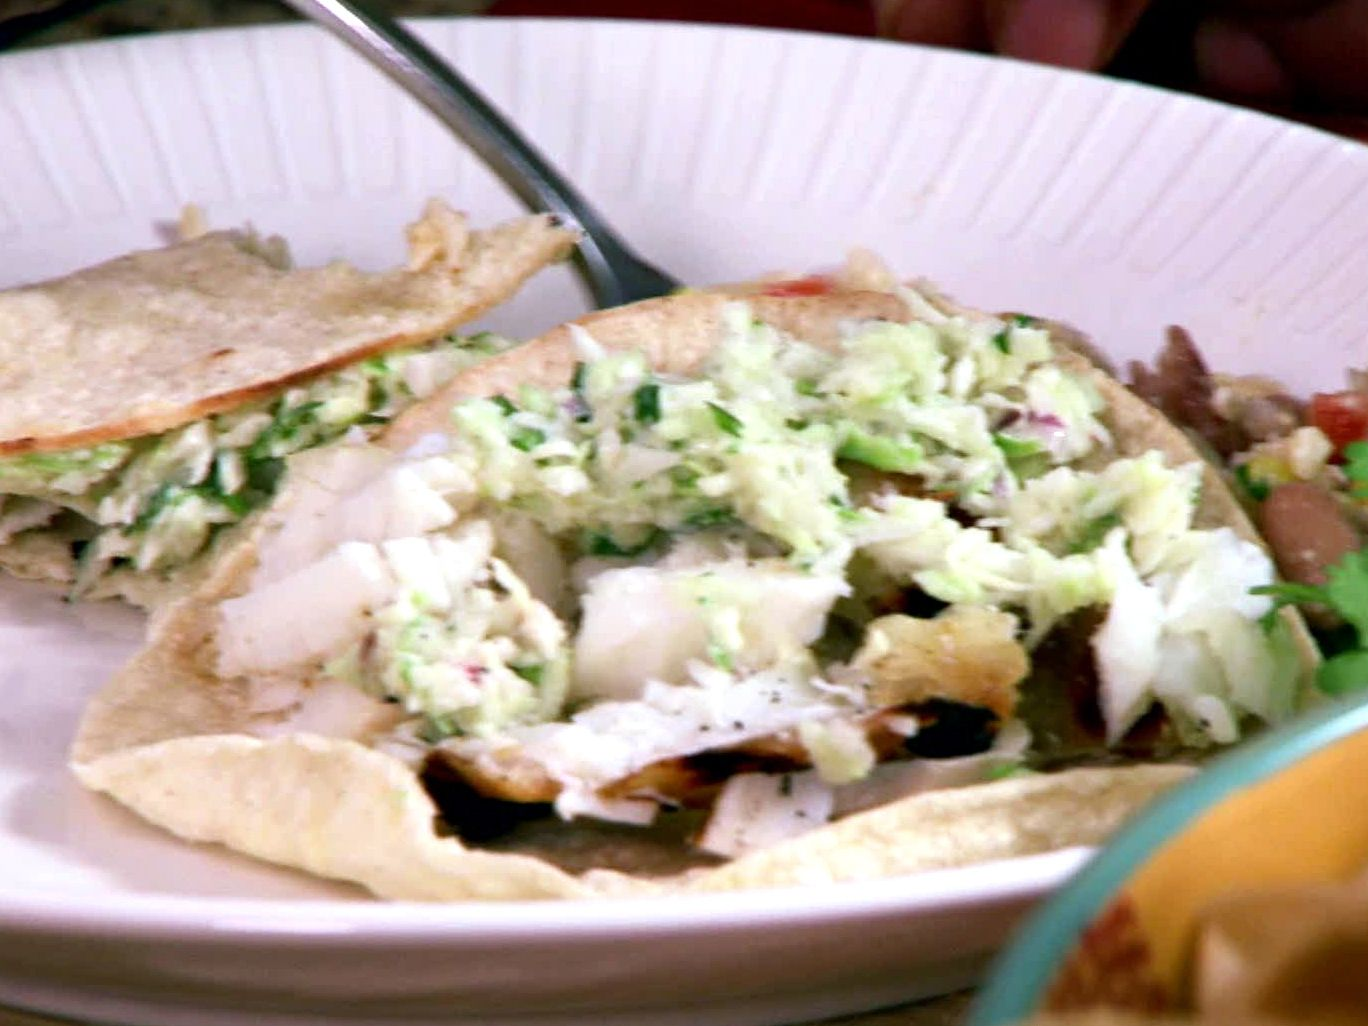 What better way to celebrate #TacoTuesday than with The Neelys' Grilled Southern Fish Tacos with Cabbage Slaw